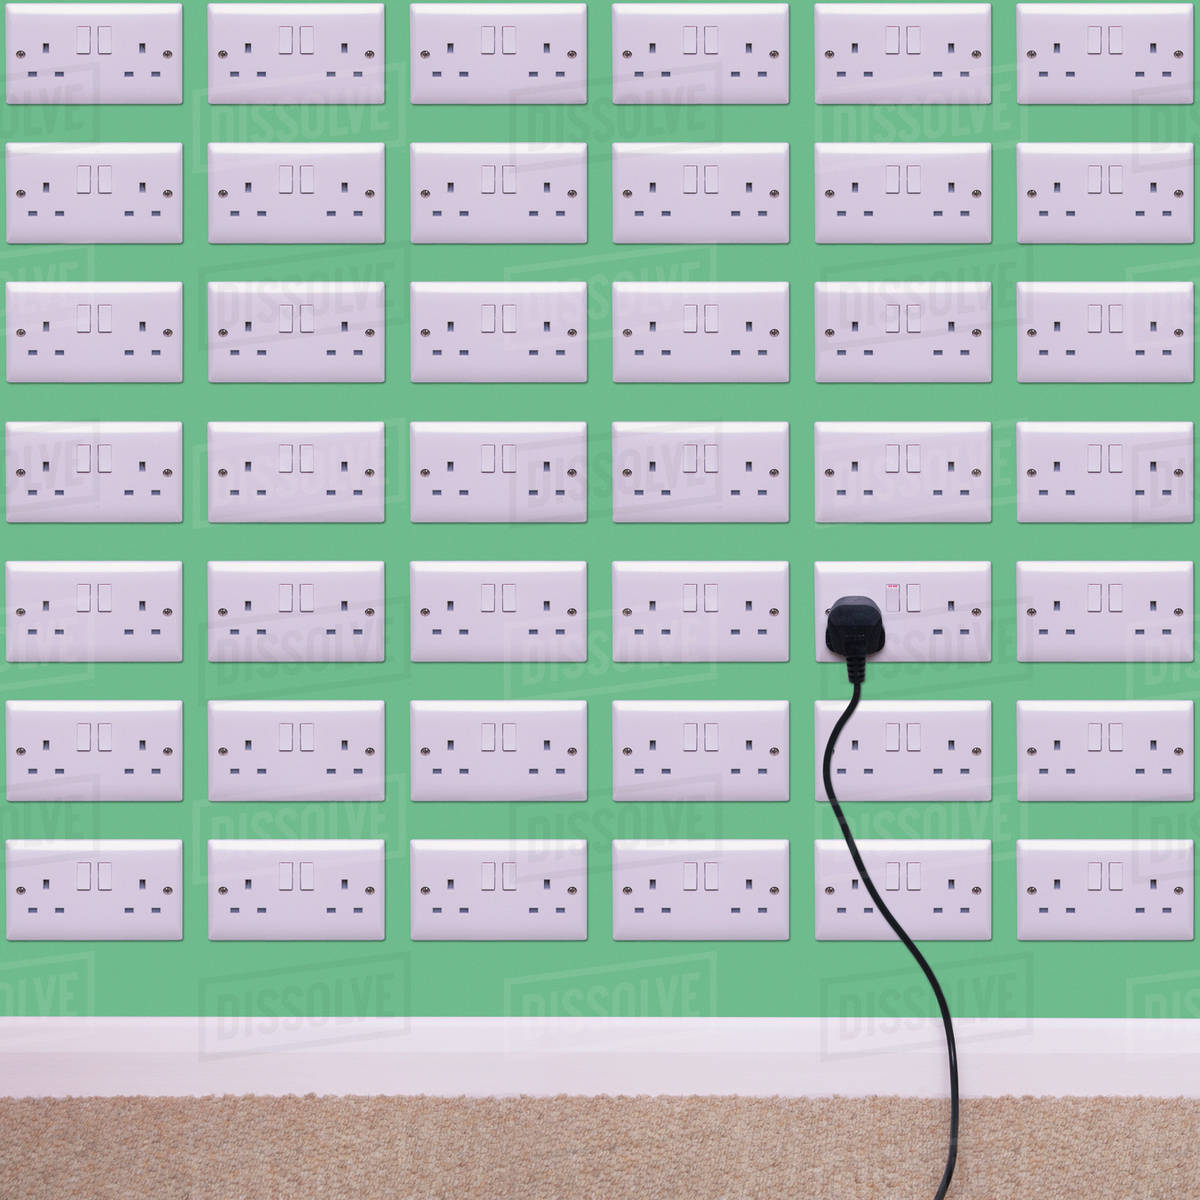 Wall covered in electrical outlets - Stock Photo - Dissolve